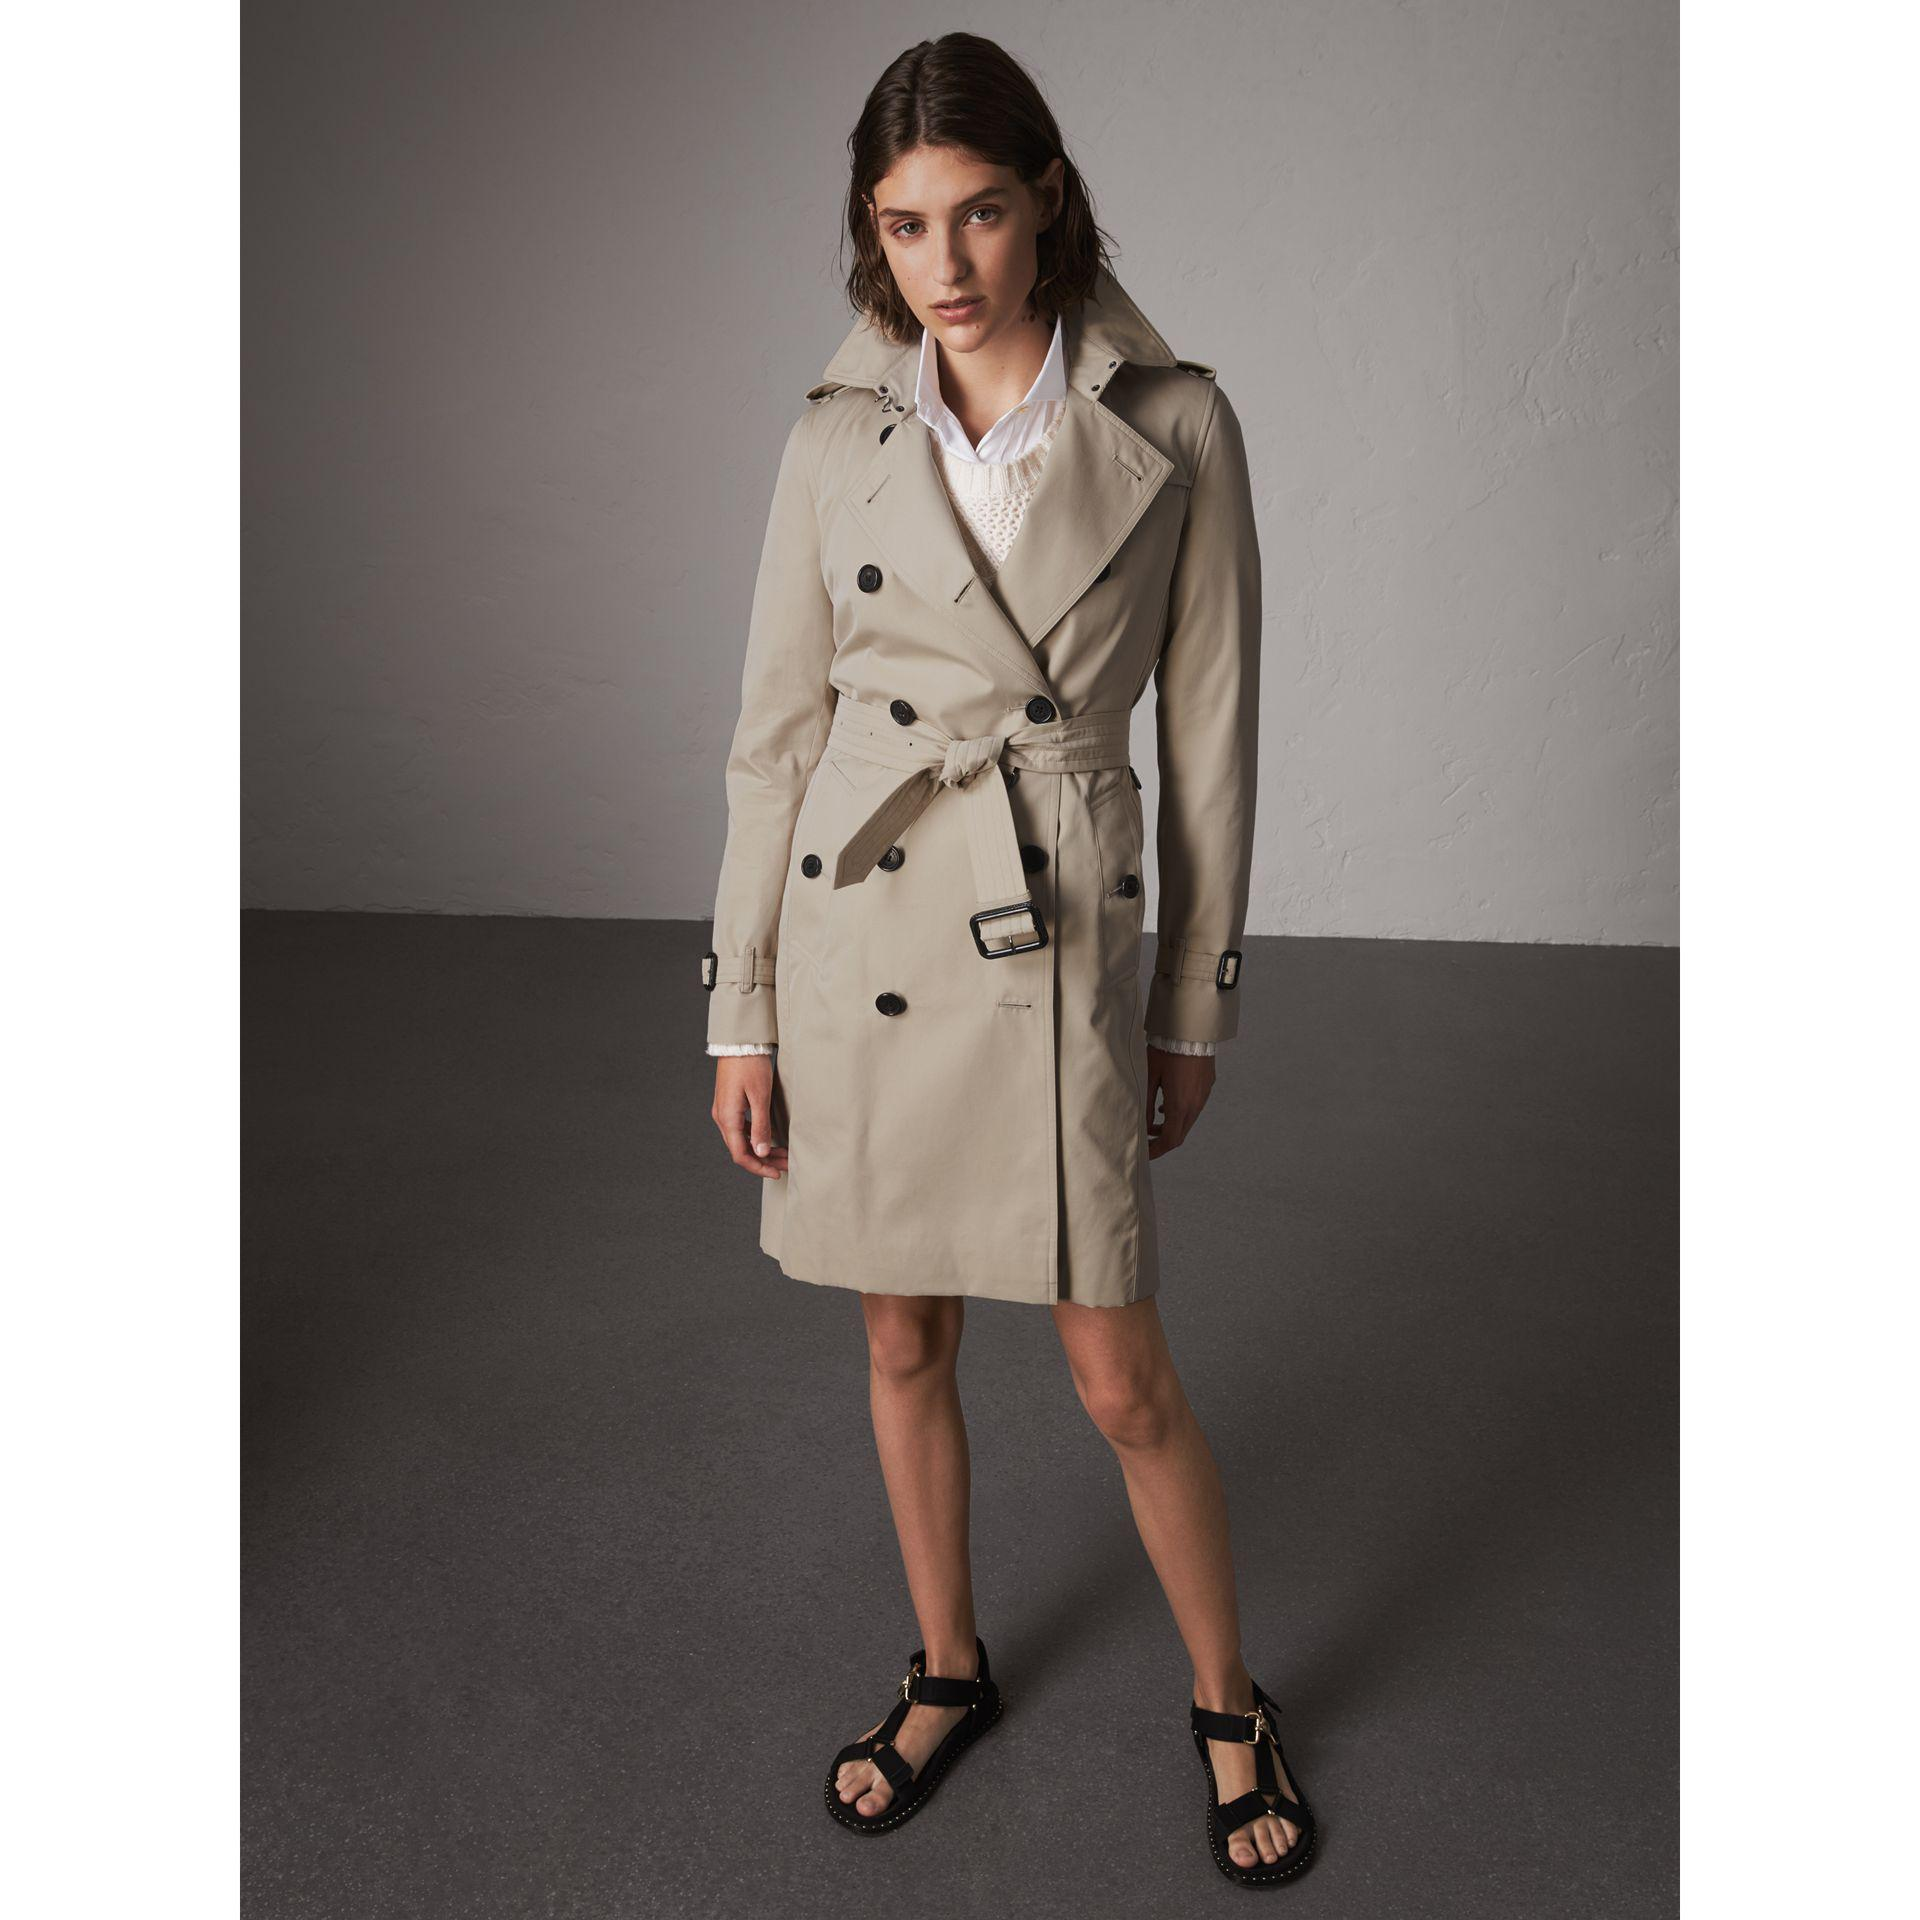 Lyst - Burberry The Kensington – Long Heritage Trench Coat Stone 3fd925d91e4